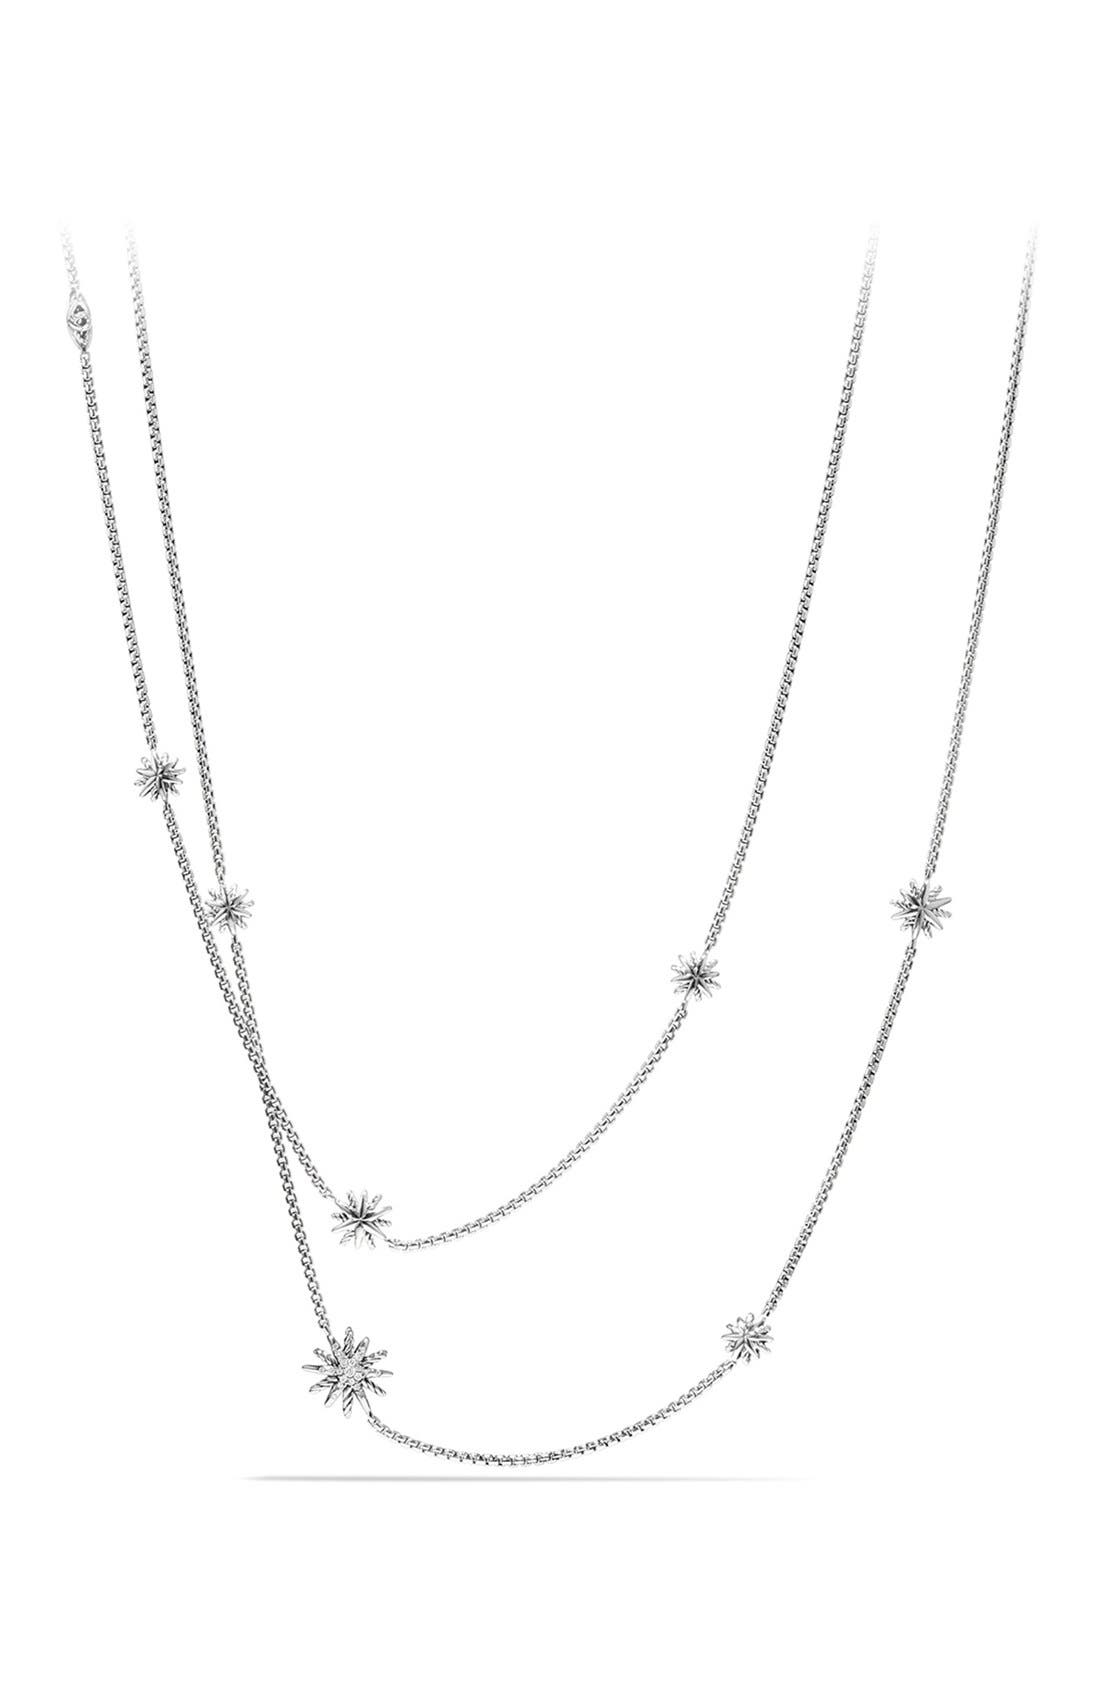 Alternate Image 1 Selected - David Yurman 'Starburst' Station Necklace with Diamonds